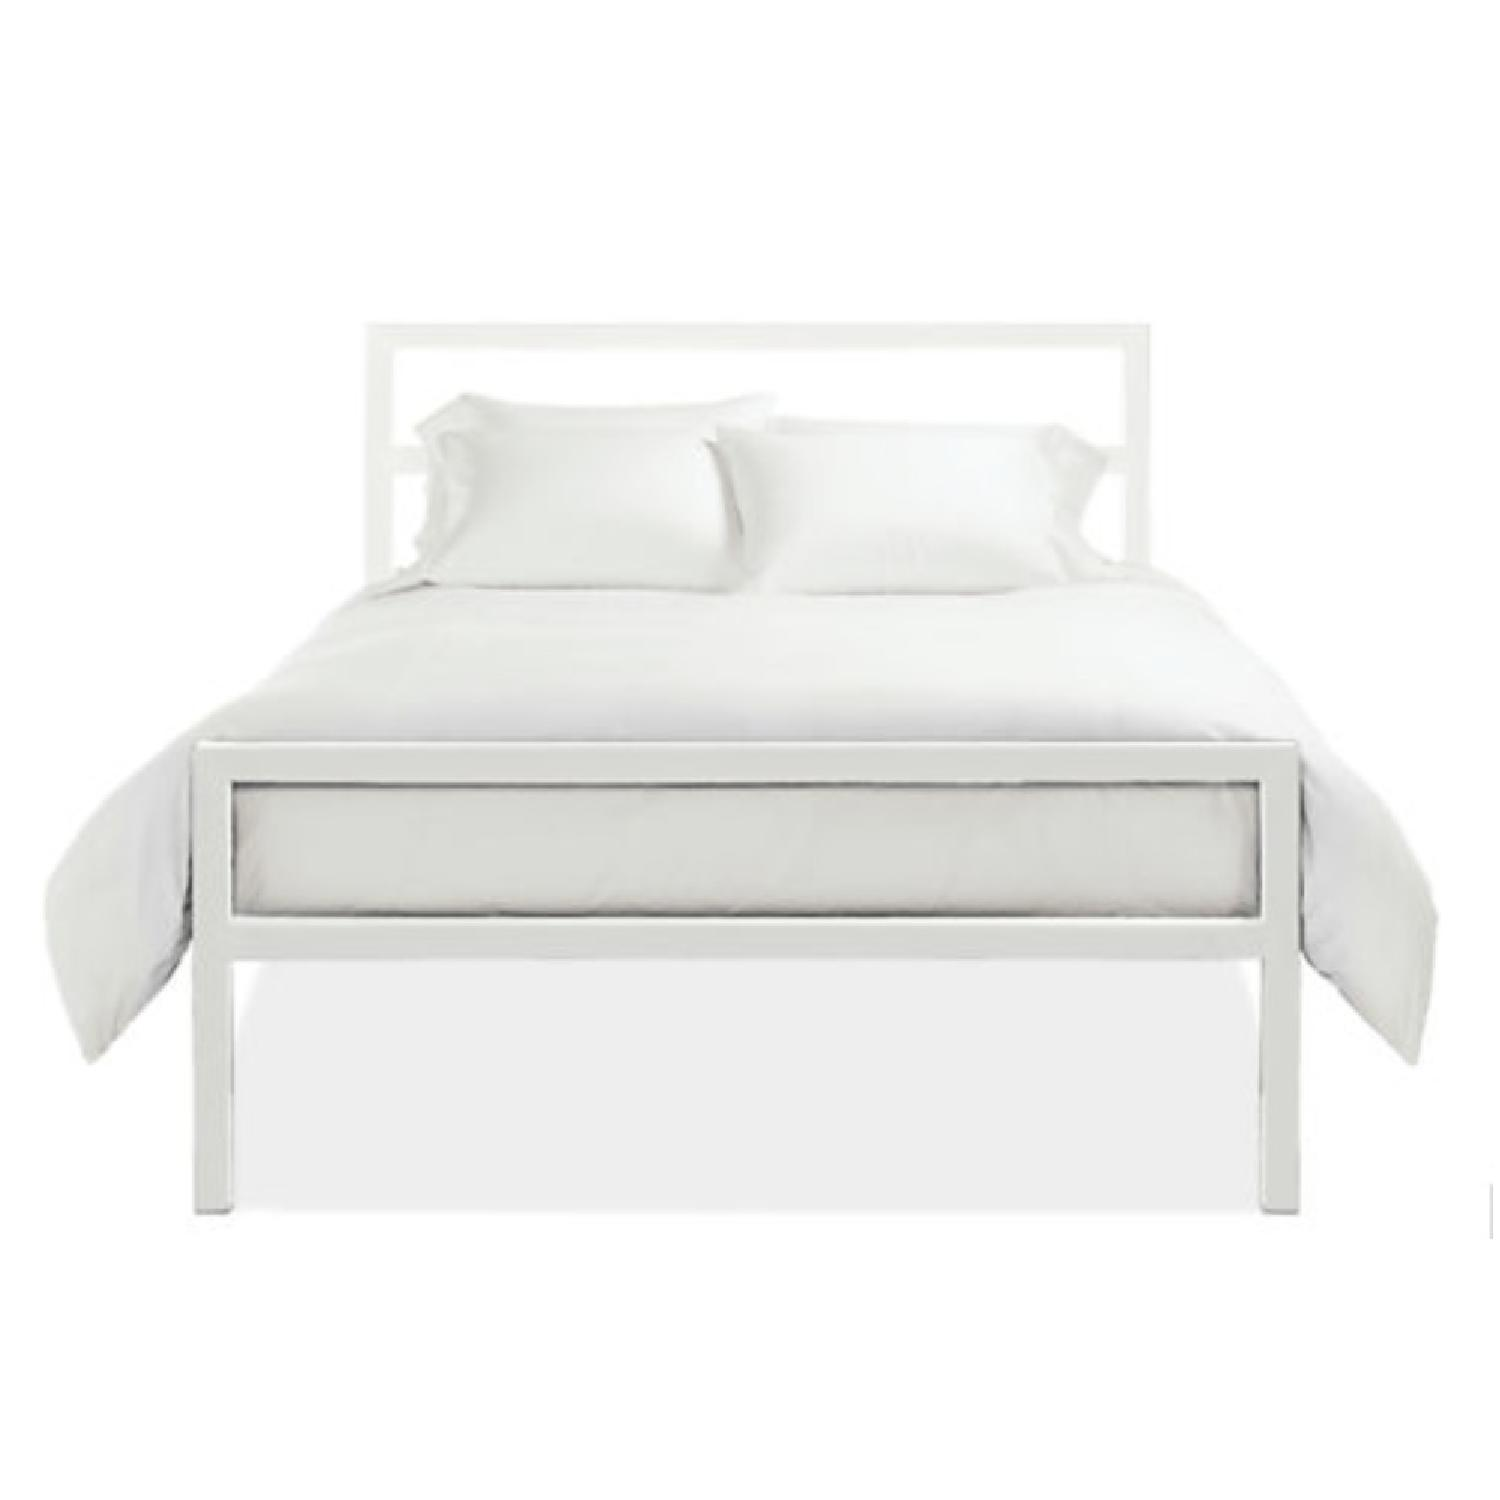 Room & Board Parsons White Tall Full Size Bed